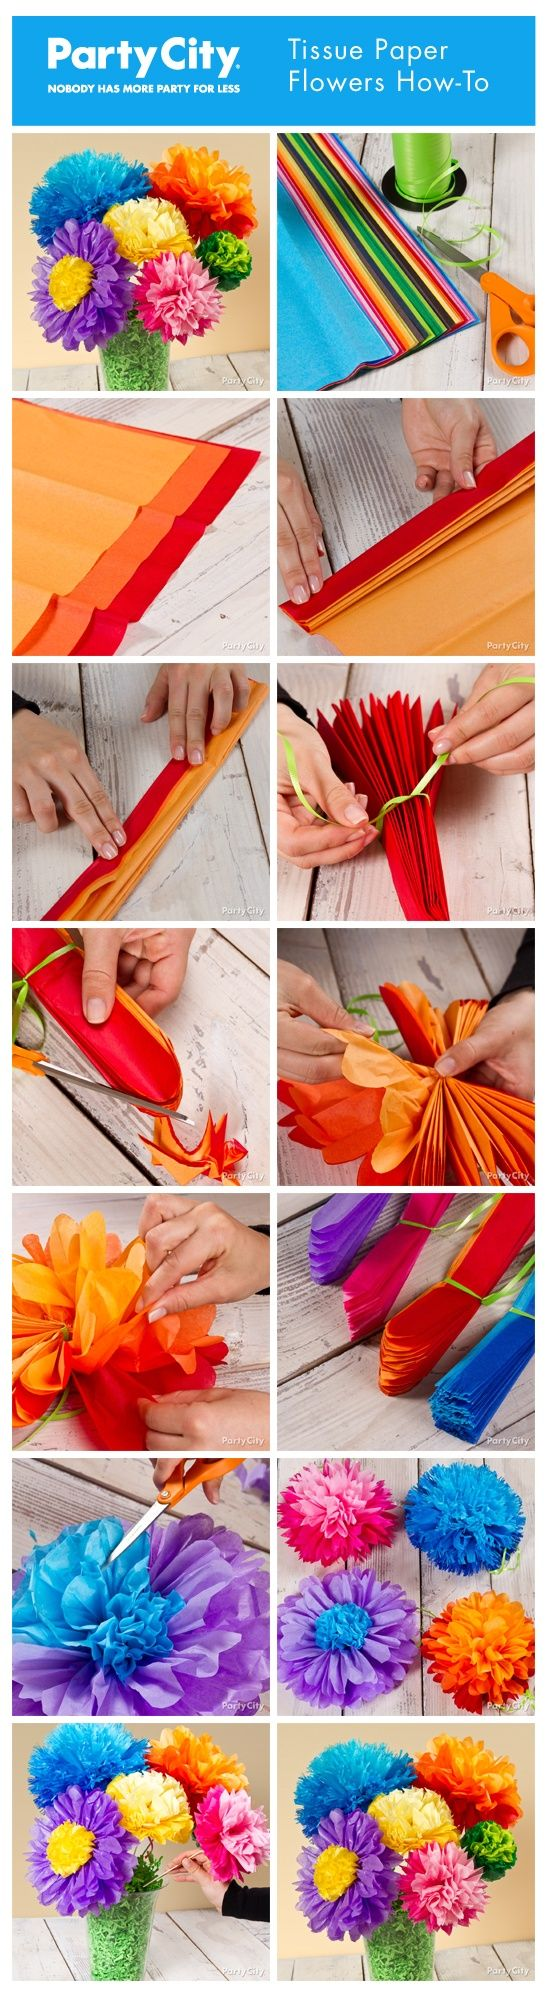 How To Make Tissue Flowers Google Search Crafts Pinterest